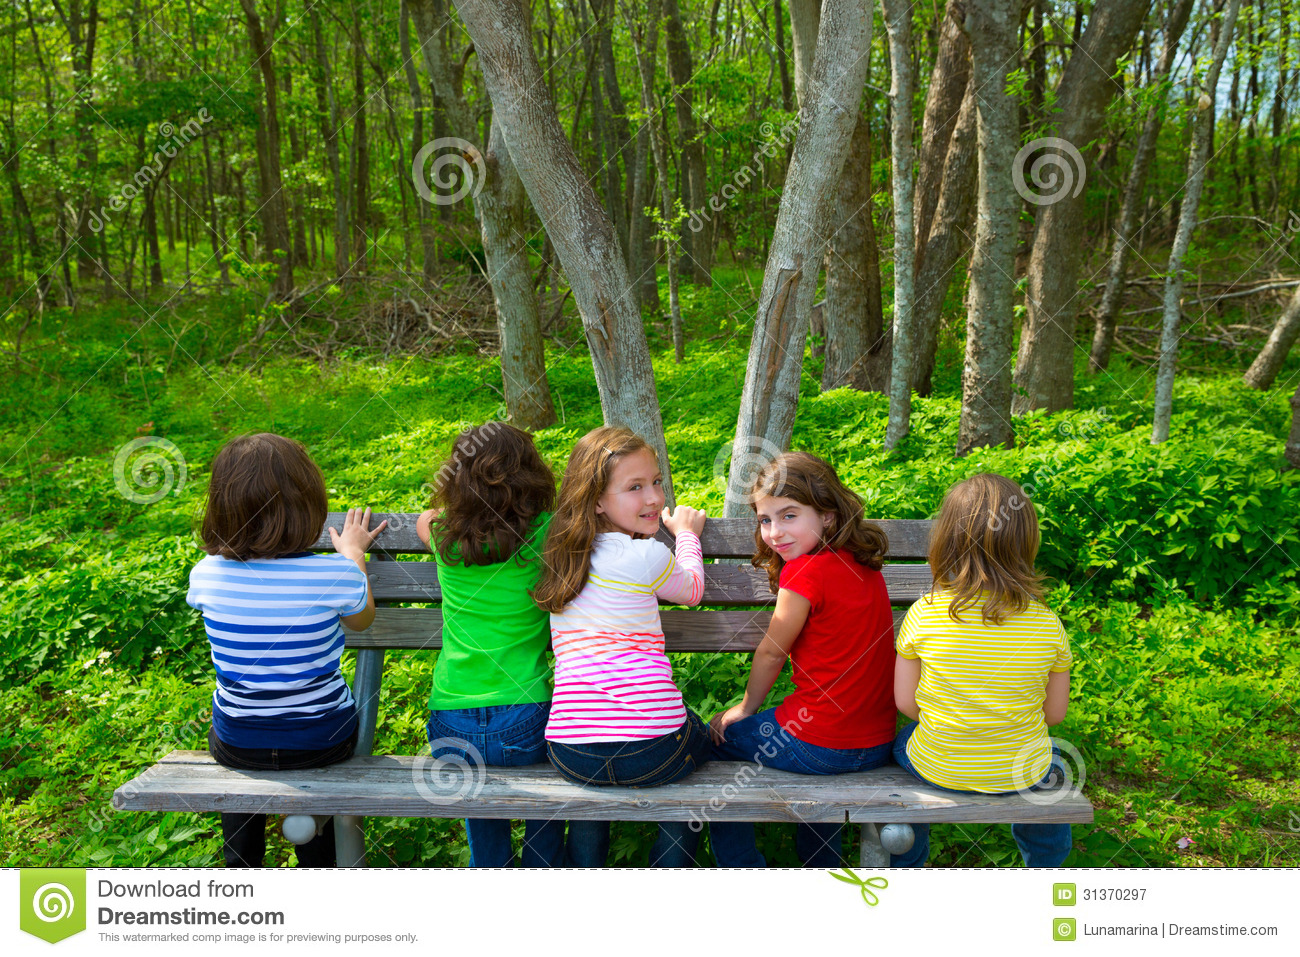 Beautiful Expersion Girl Wallpapers Children Sister And Friend Girls Sitting On Forest Park